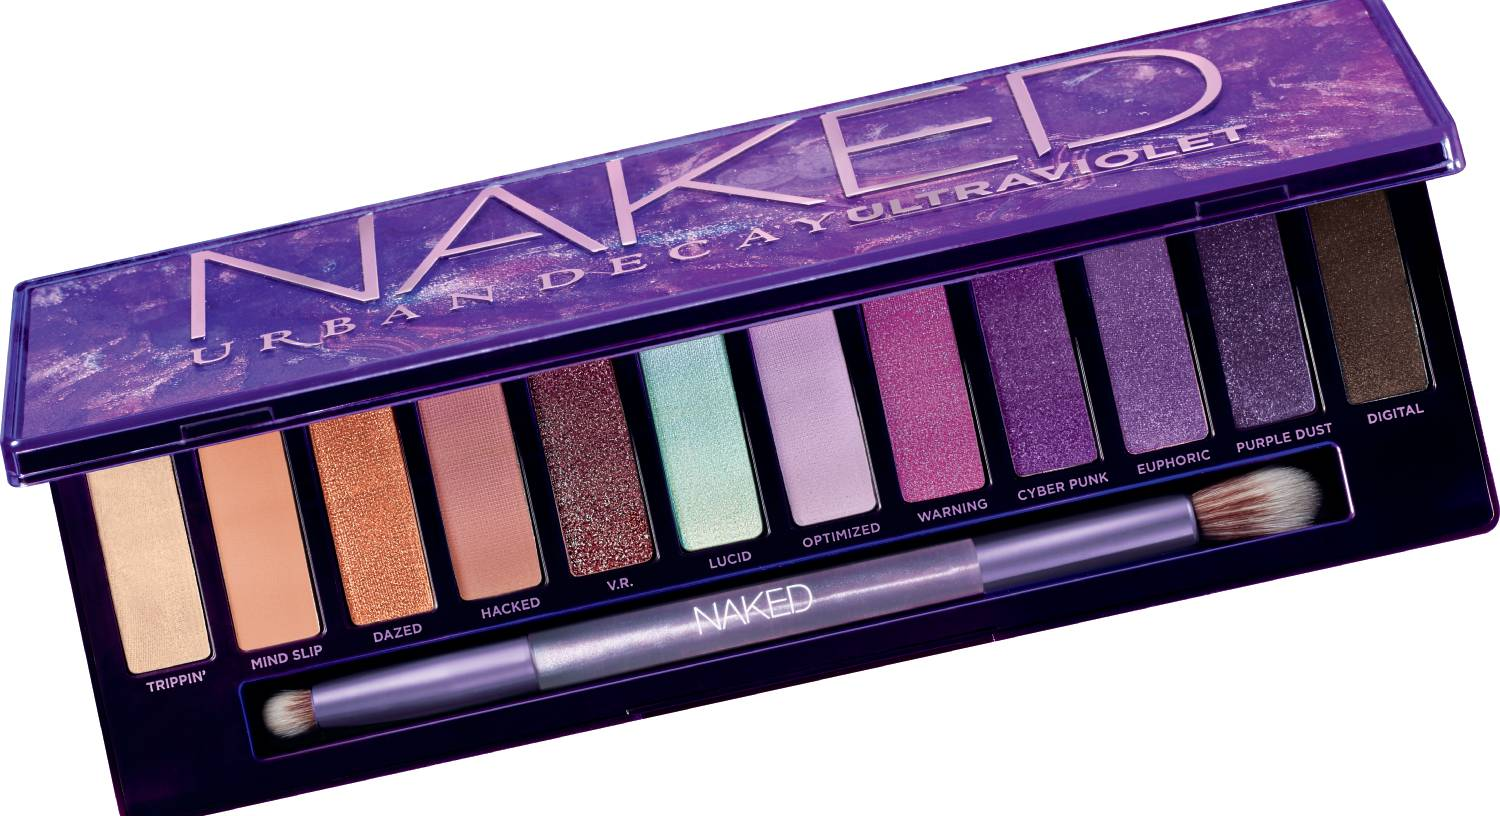 Bored of smoky eye makeup? Get inspired with the hottest shadow palettes for summer